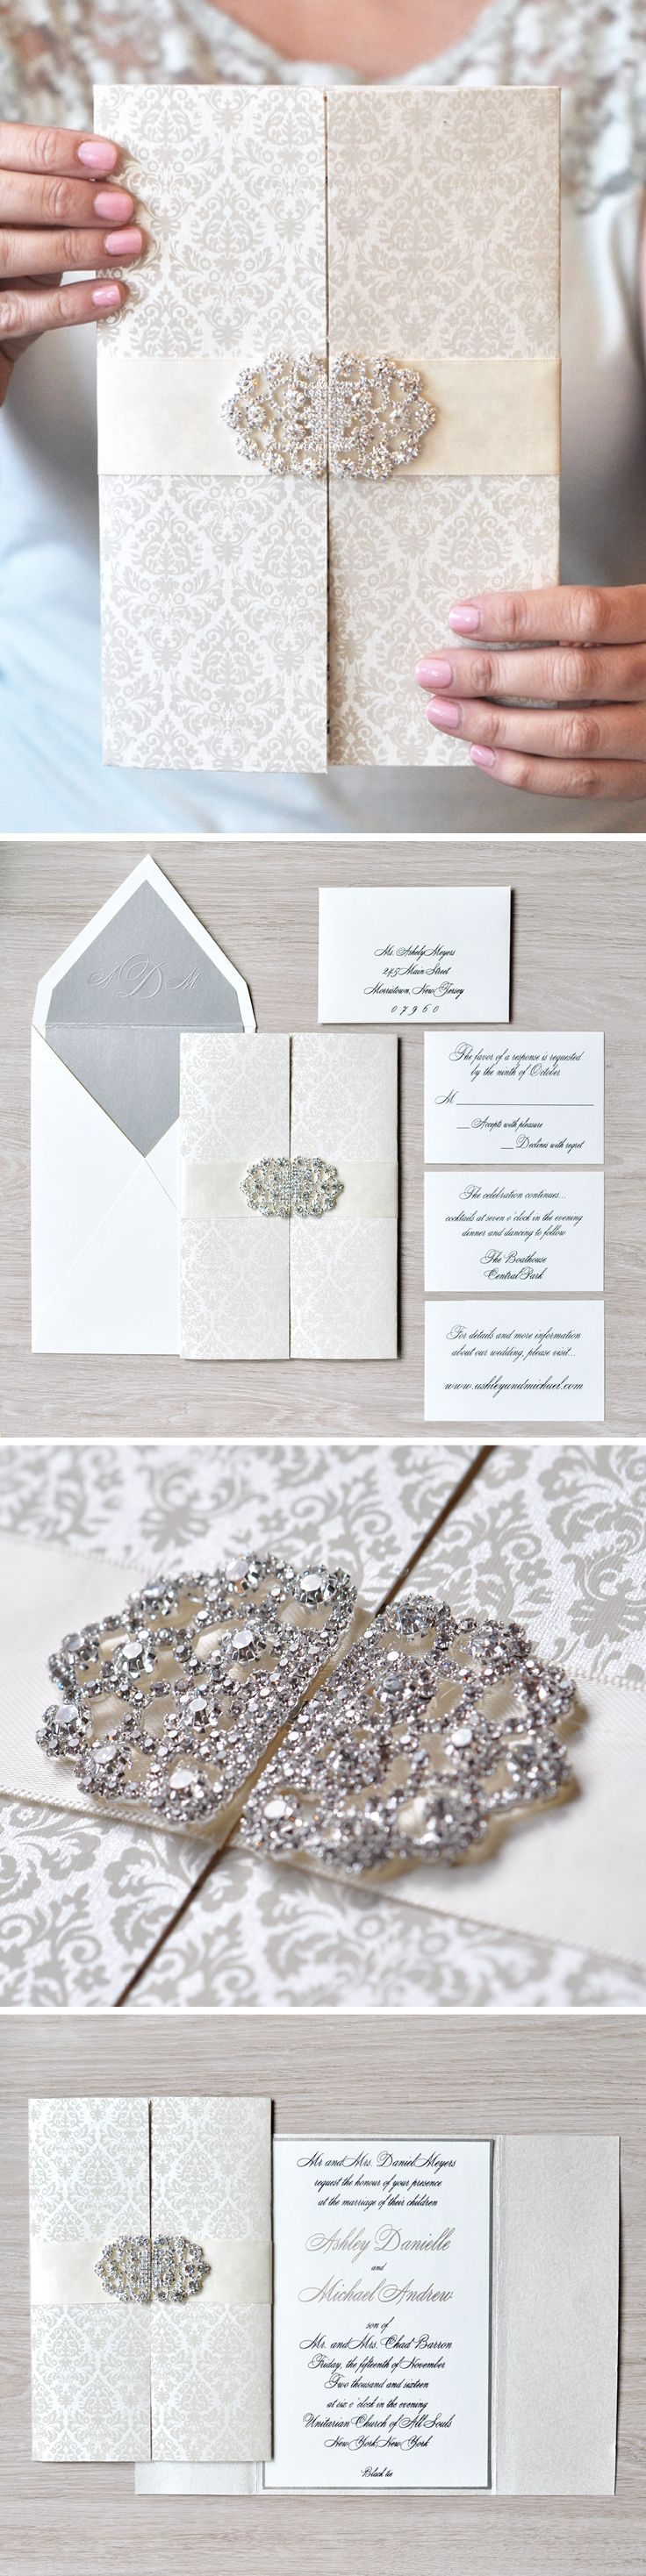 sample of wedding invitation letter%0A Damask  u     Gatefold Wedding Invitation  Alyssa Wedding Invitation